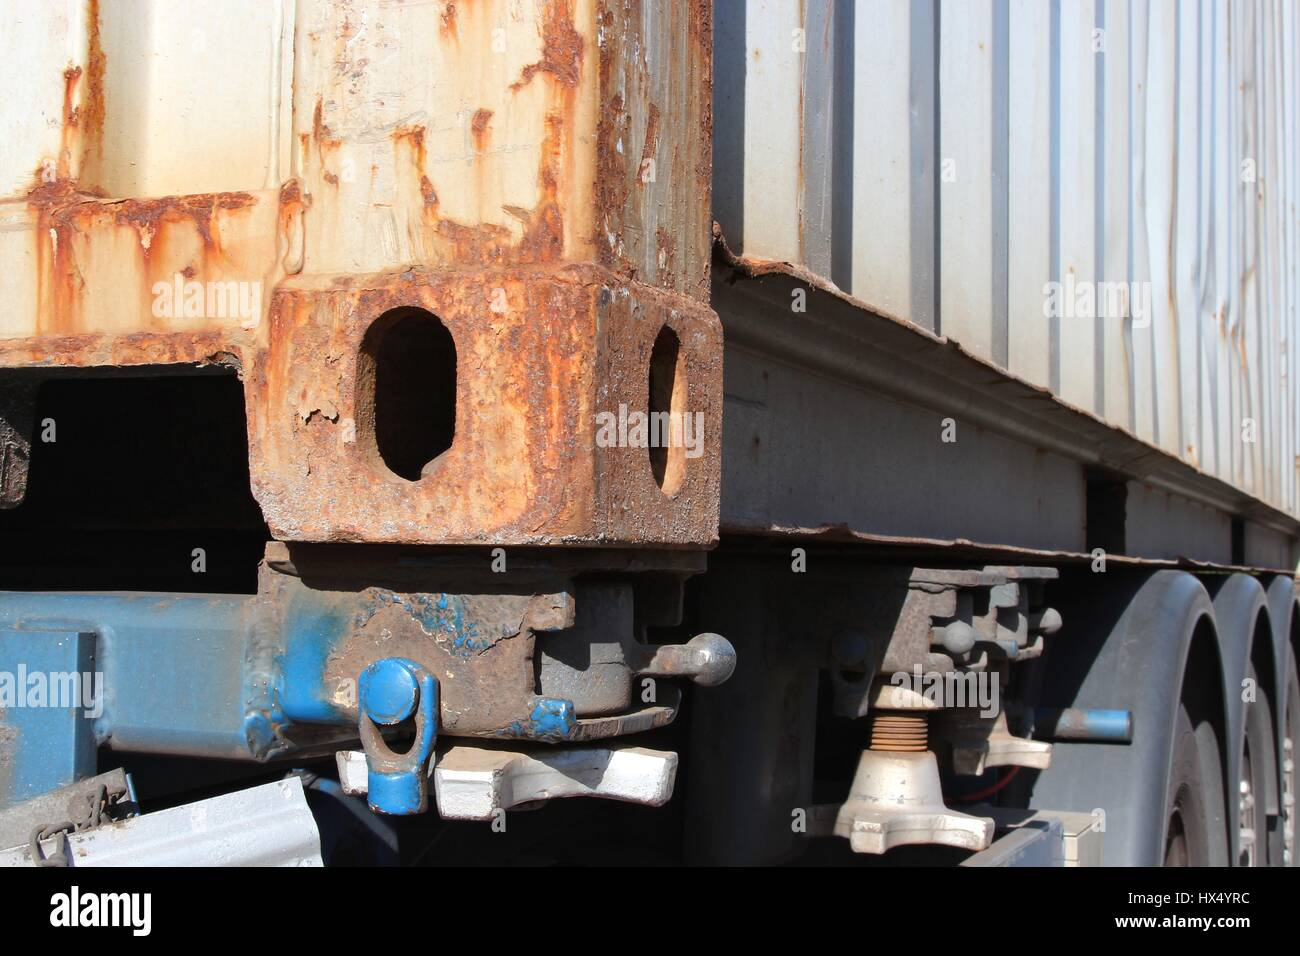 intermodal container on trailer - Stock Image